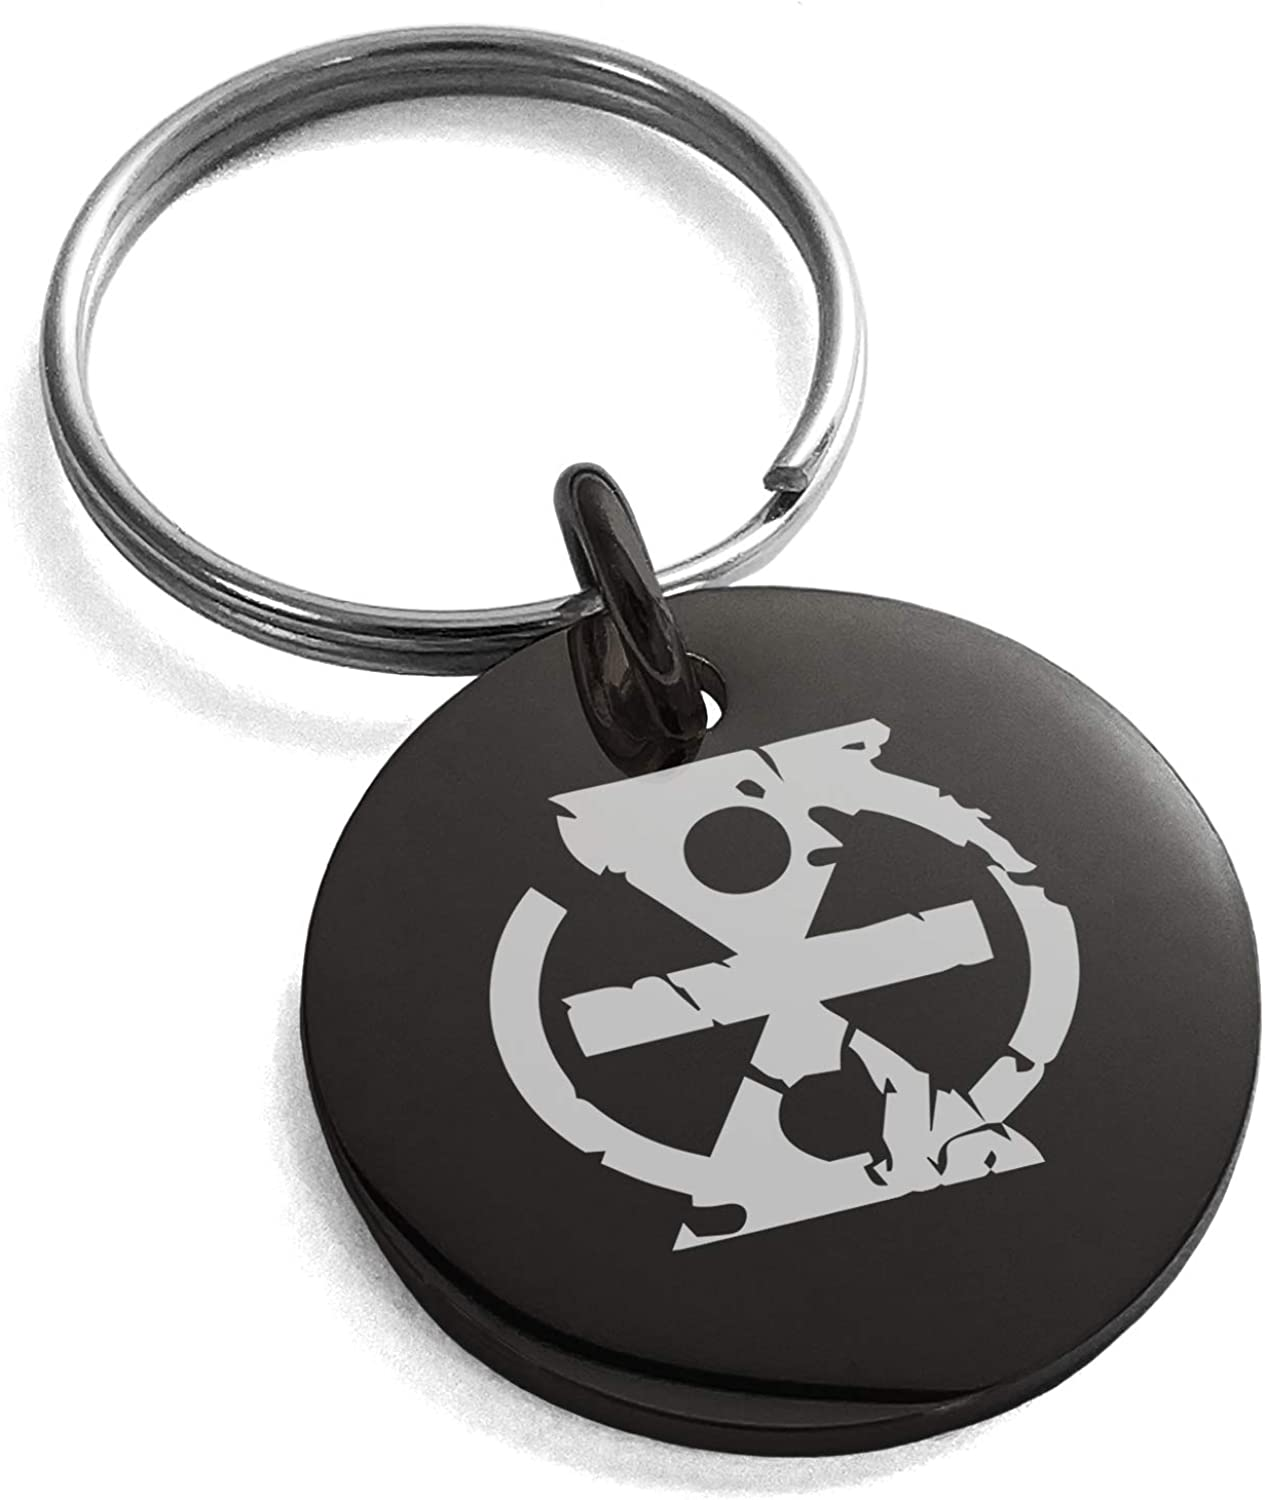 Tioneer Stainless Steel Ancient Tribal Change Rune Symbol Small Medallion Circle Charm Keychain Keyring